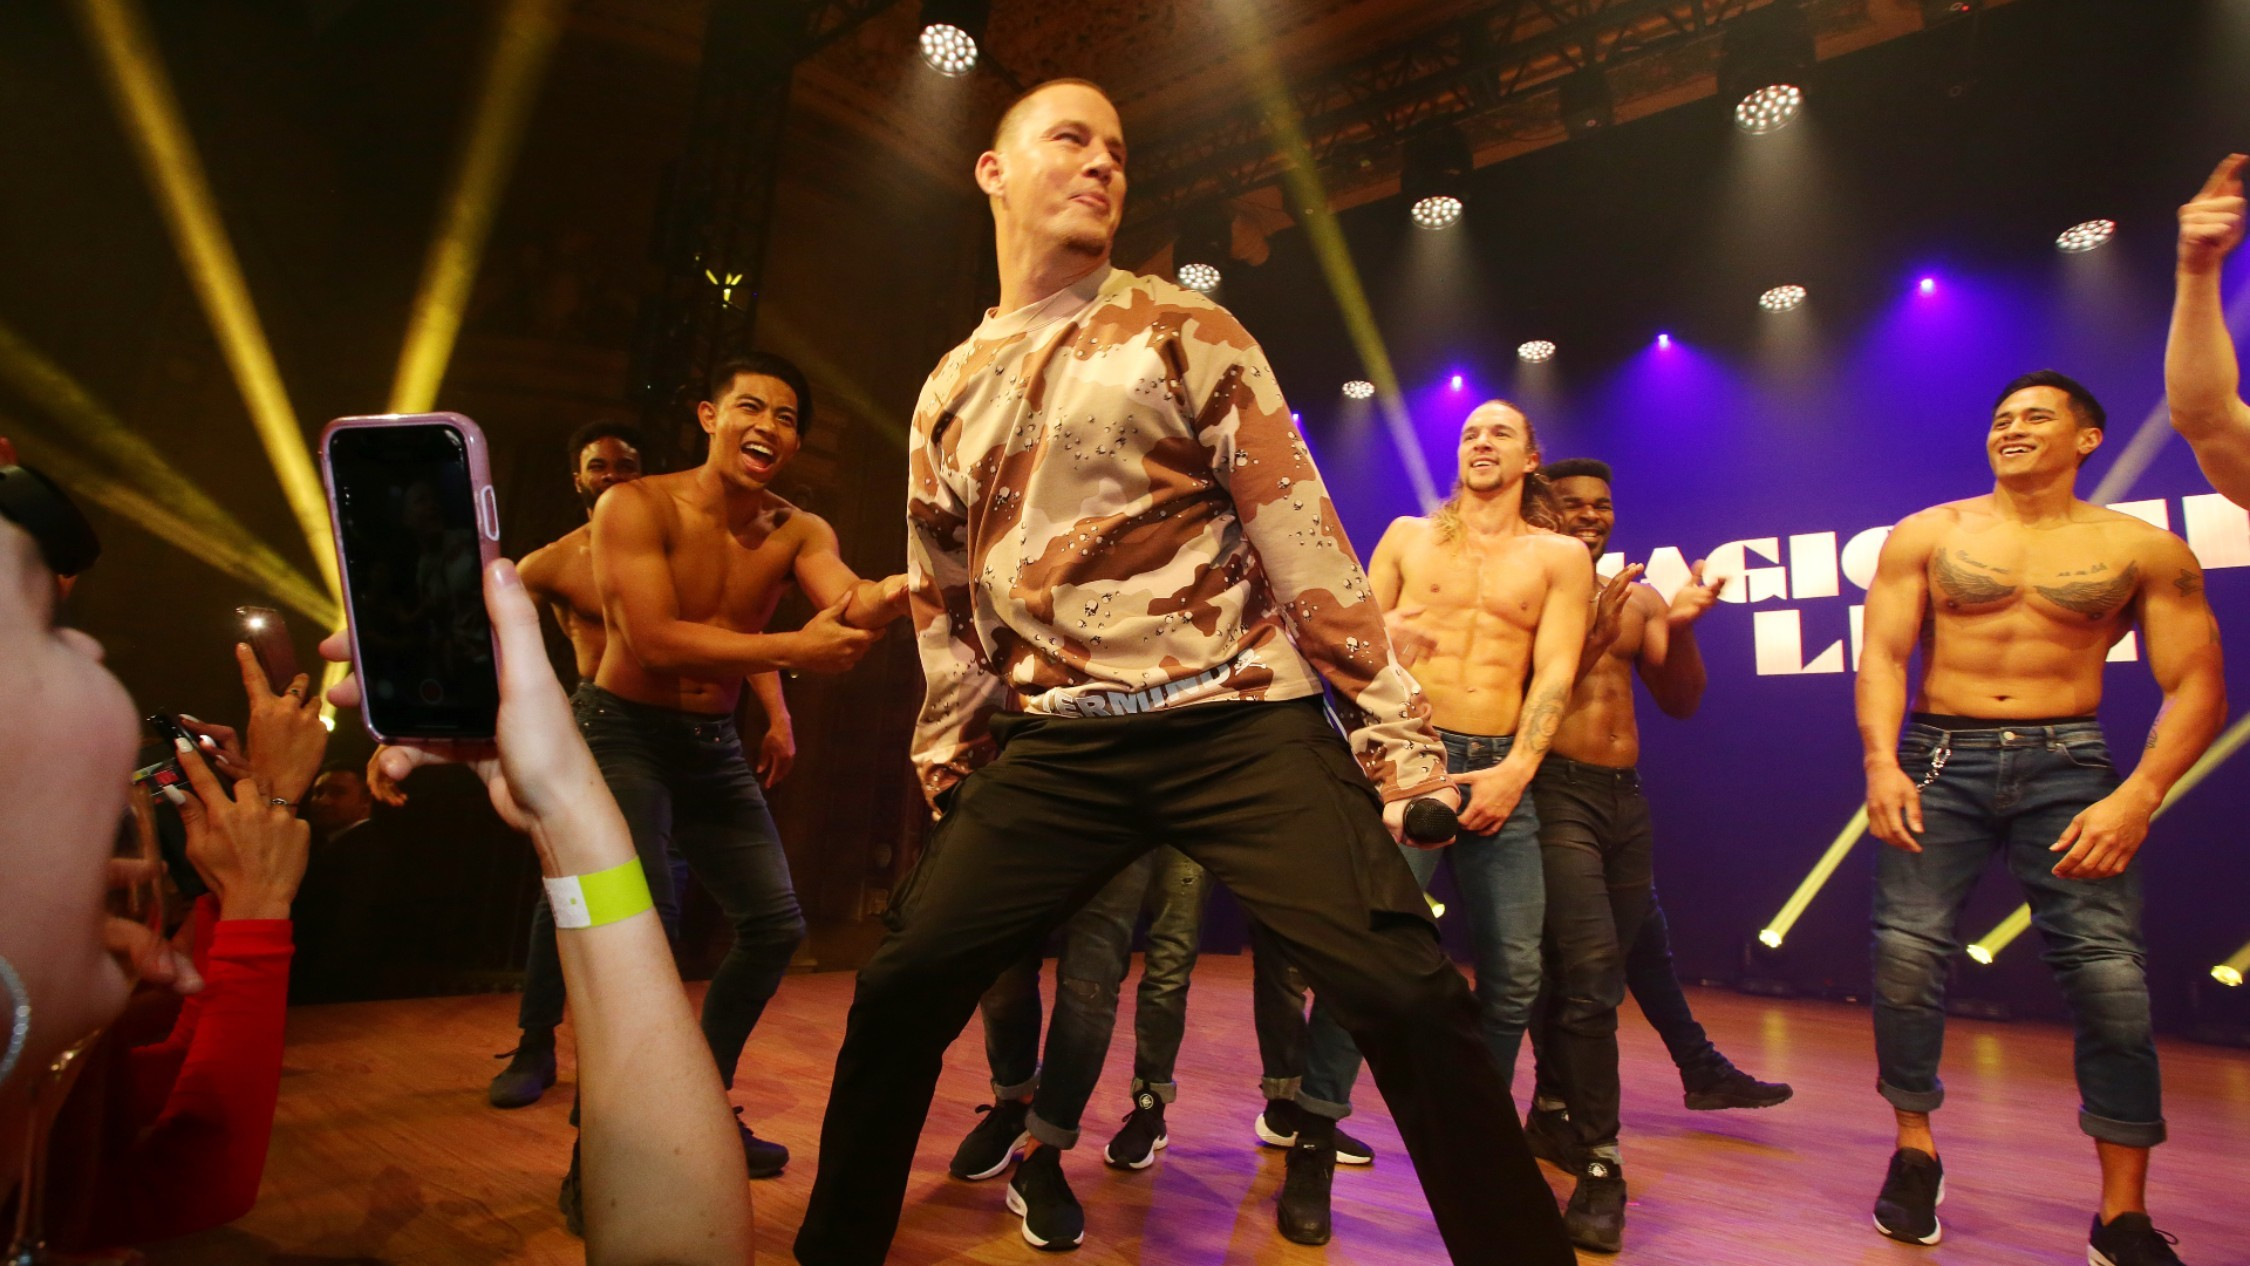 Channing Tatum with buff male dancers on stage announcing Magic Mike Live